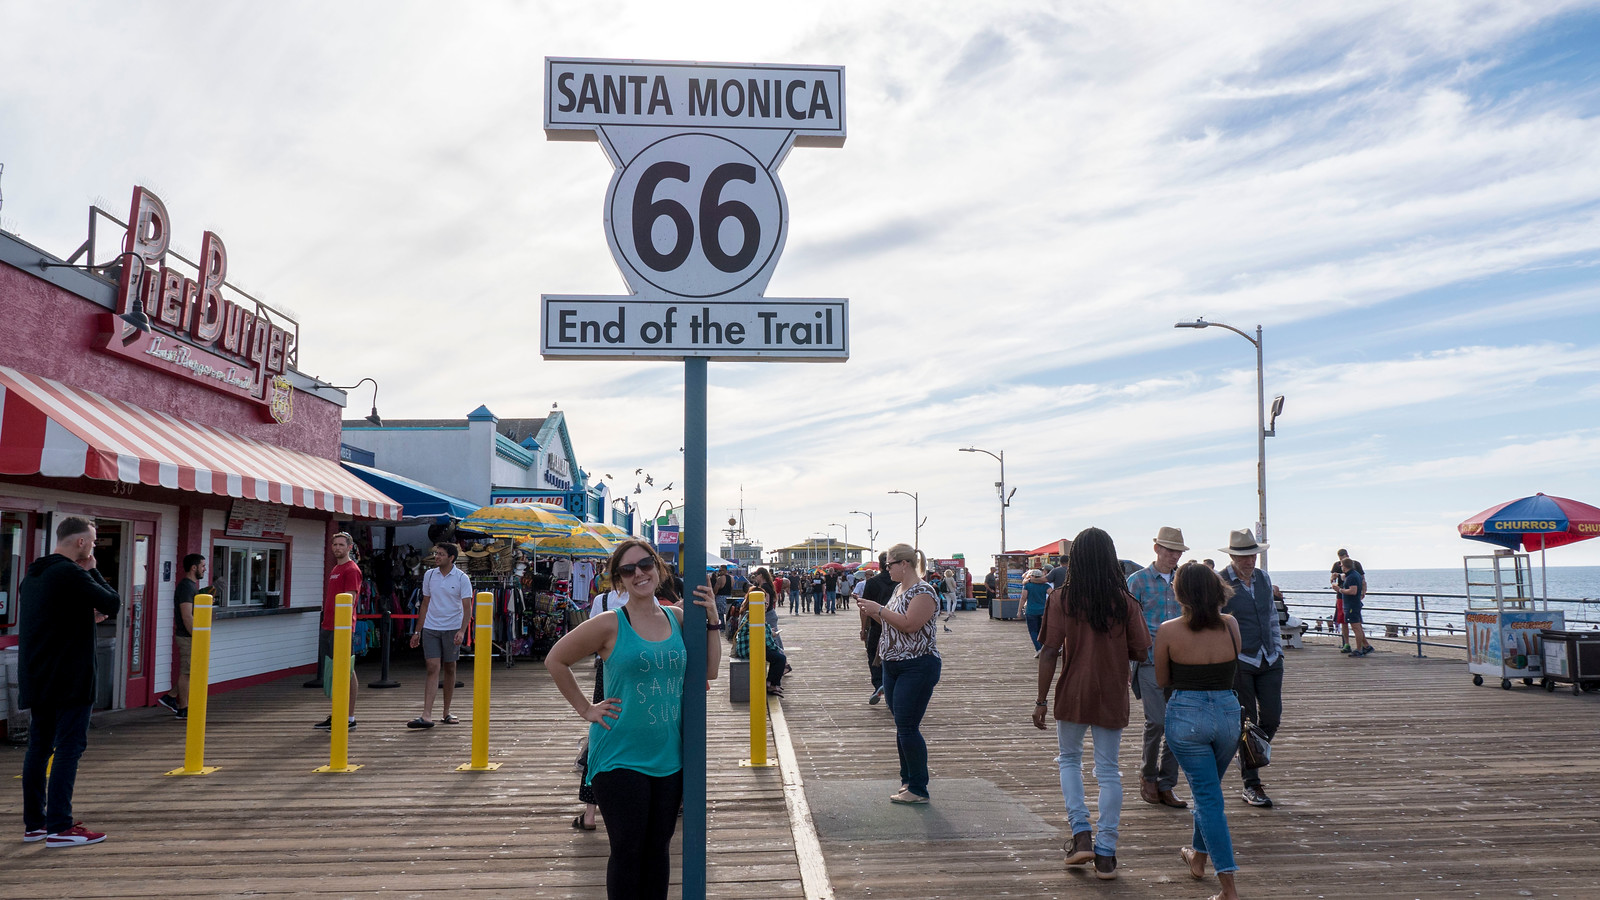 End of Route 66 at Santa Monica Pier - 2 Days in Los Angeles Itinerary for First Timers